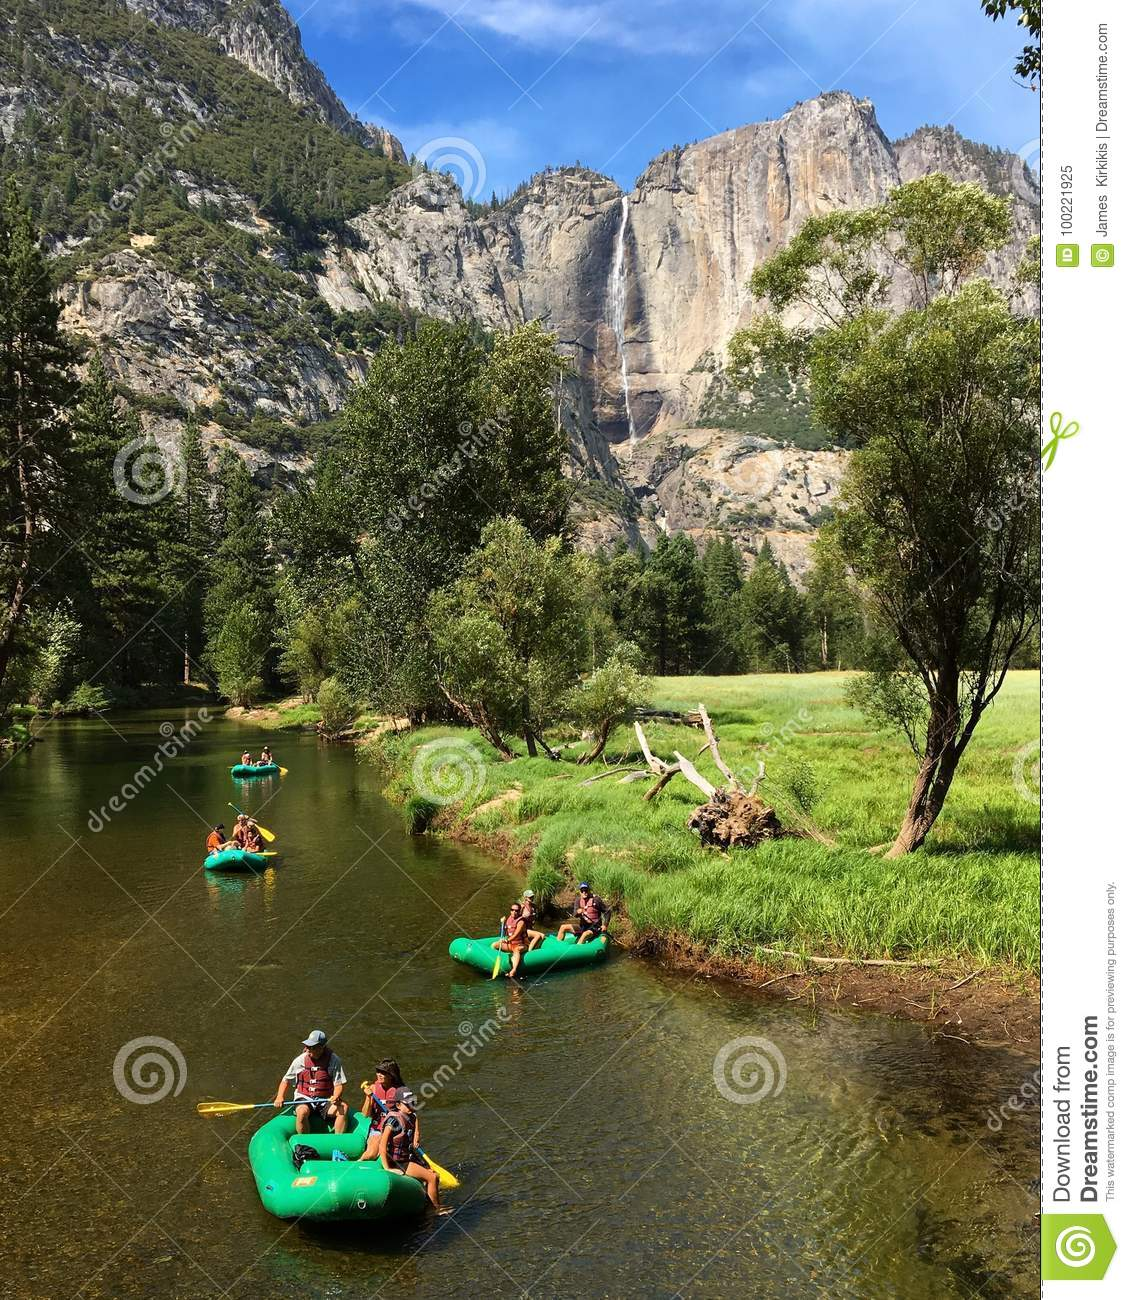 River Rafting Yosemite National Park: Rafting On The Merced Editorial Image. Image Of Excitement